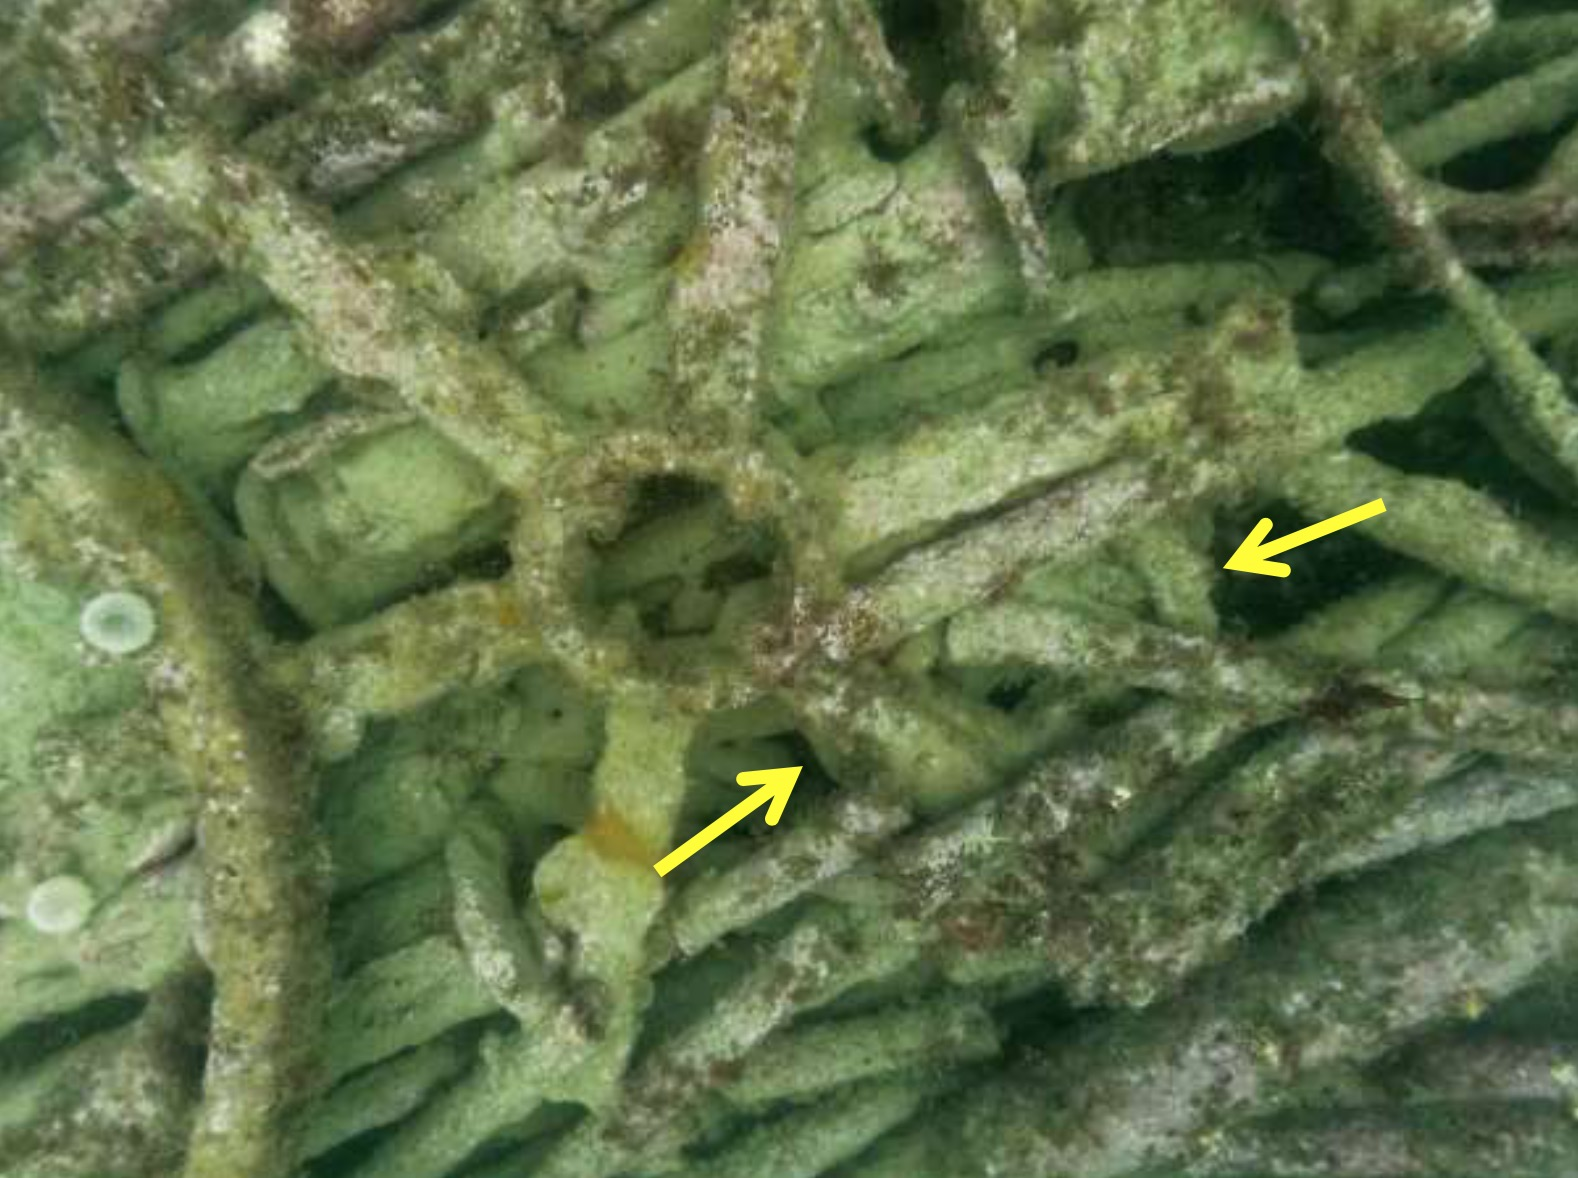 Underwater photo of components on the Wheel Wreck. Yellow arrows point out the almost hidden smaller wheel. A few teeth can just be observed, demonstrating that this wheel was possibly part of a gear train.